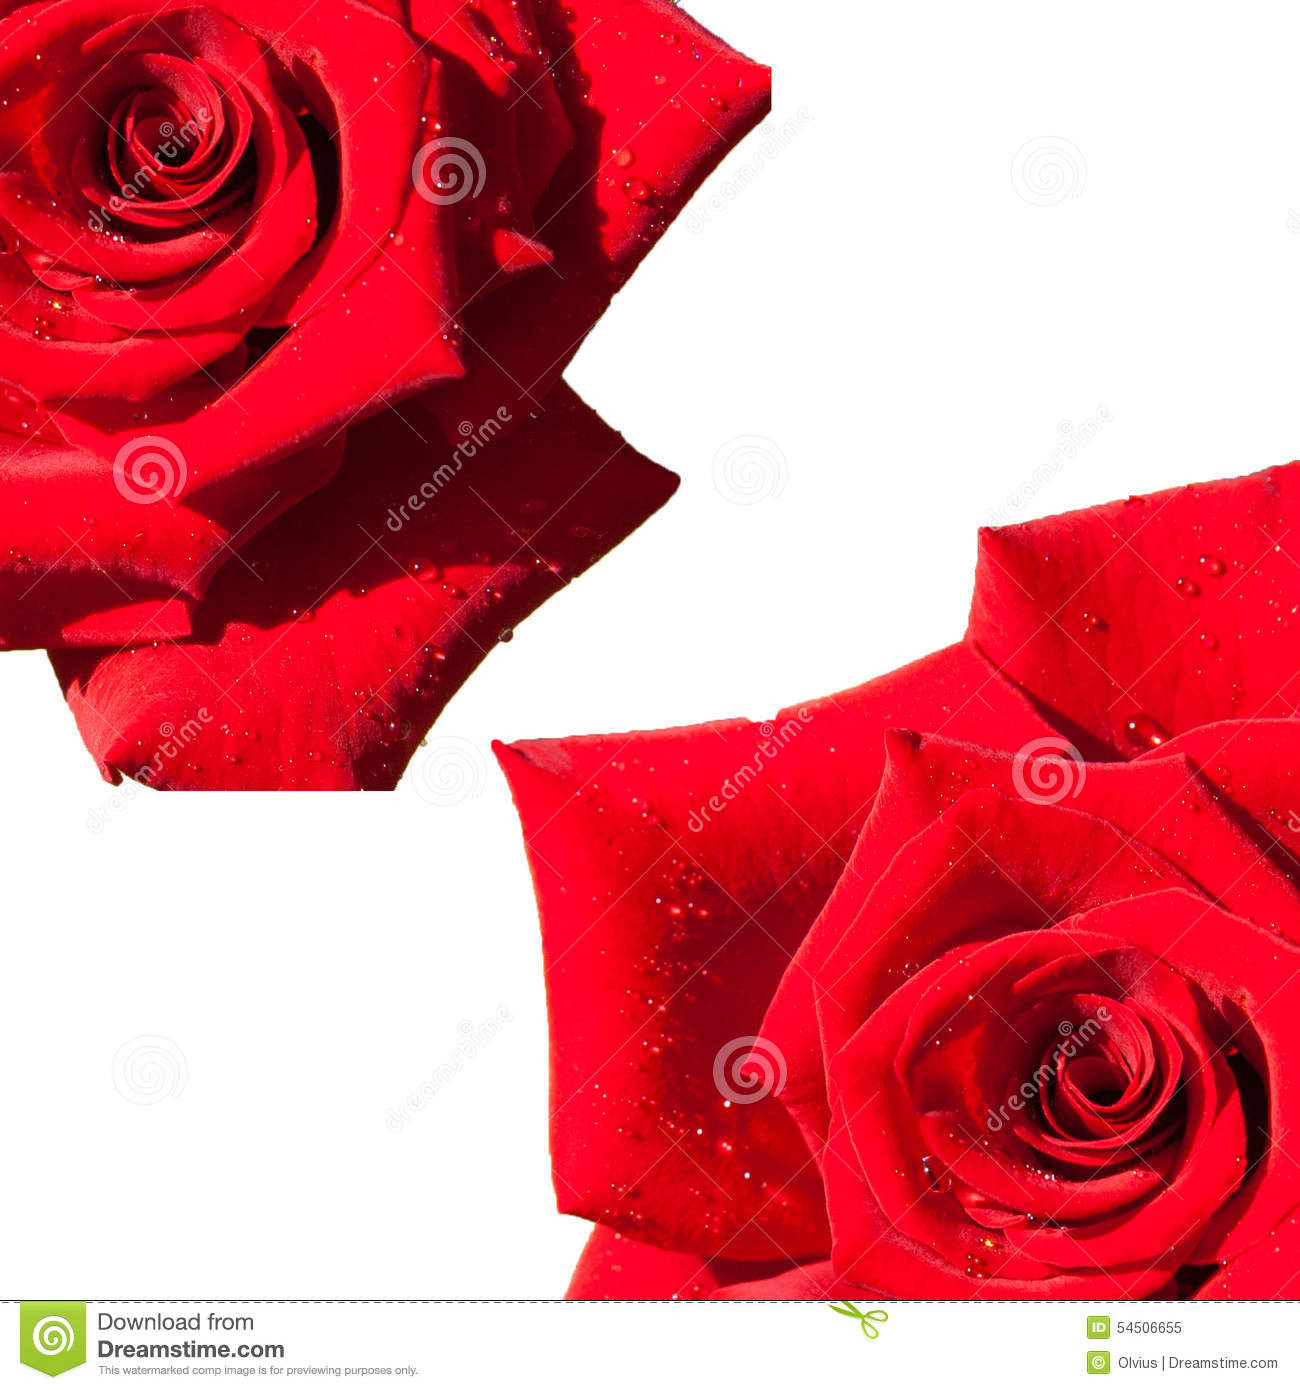 Rose rouge d isolement